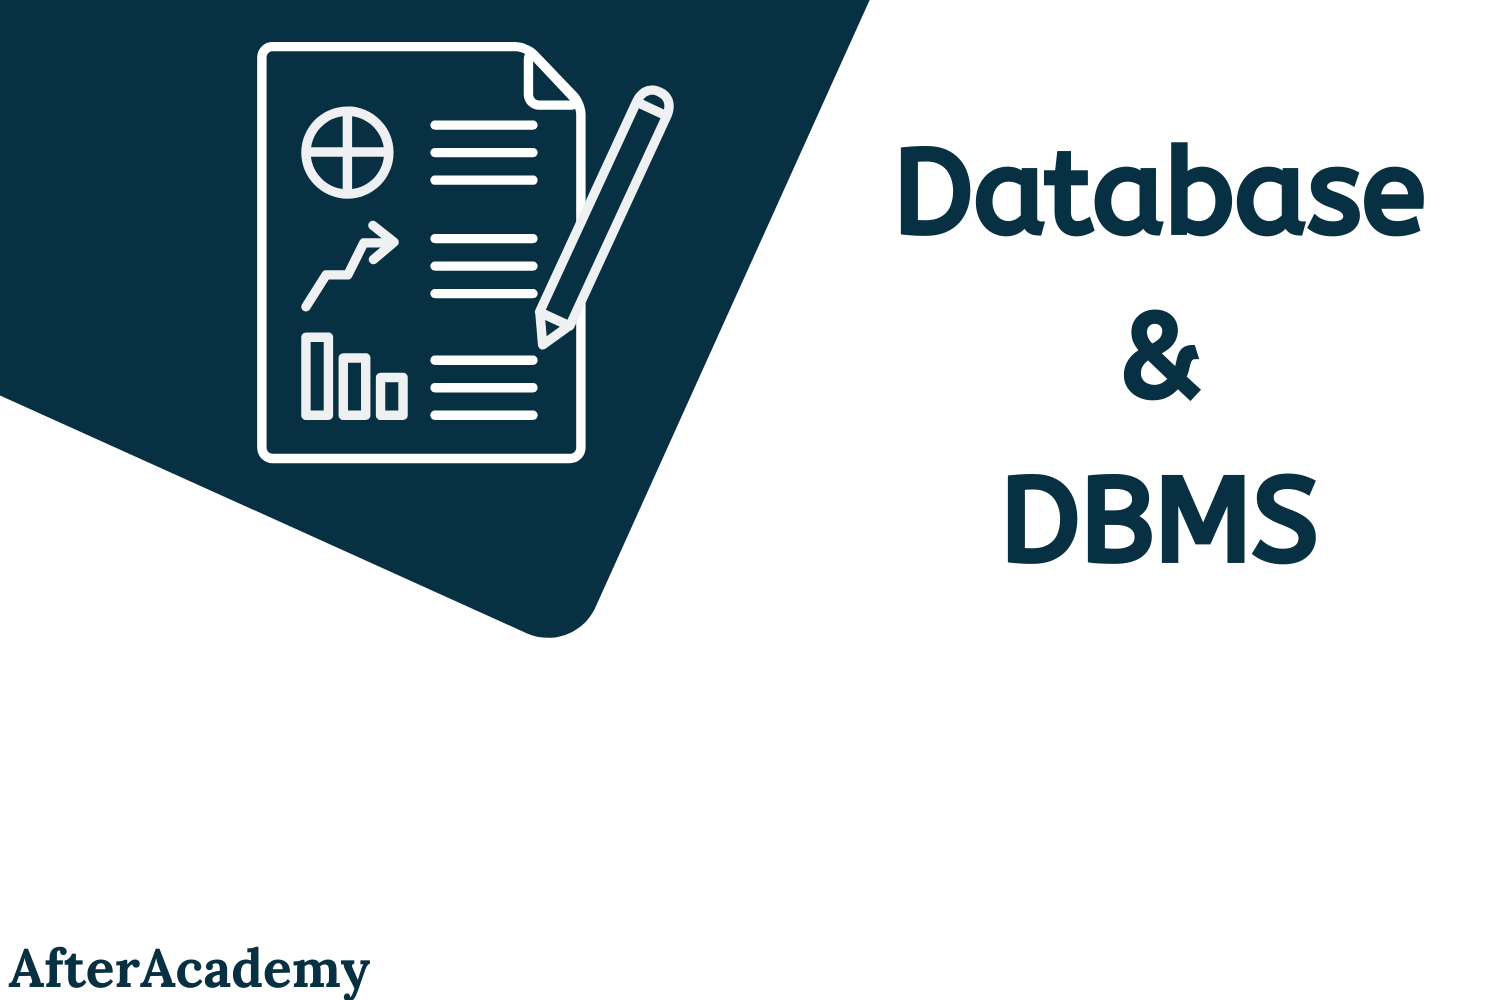 What is a Database and DBMS?